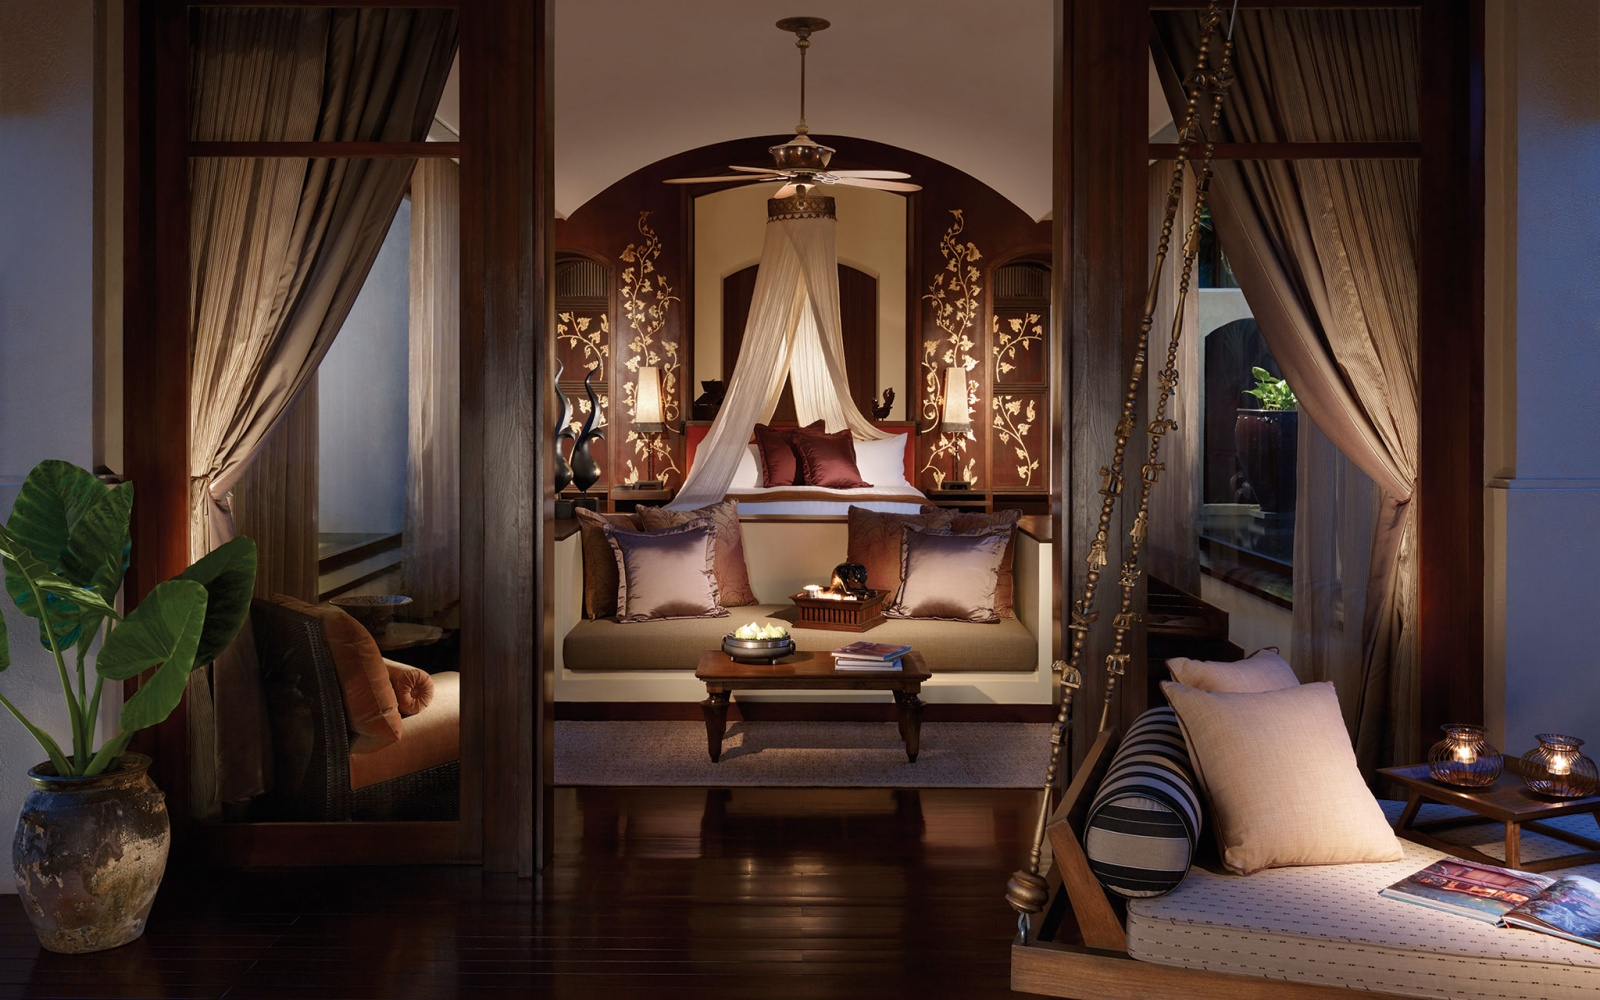 No. 22 Four Seasons Resort Chiang Mai, Thailand